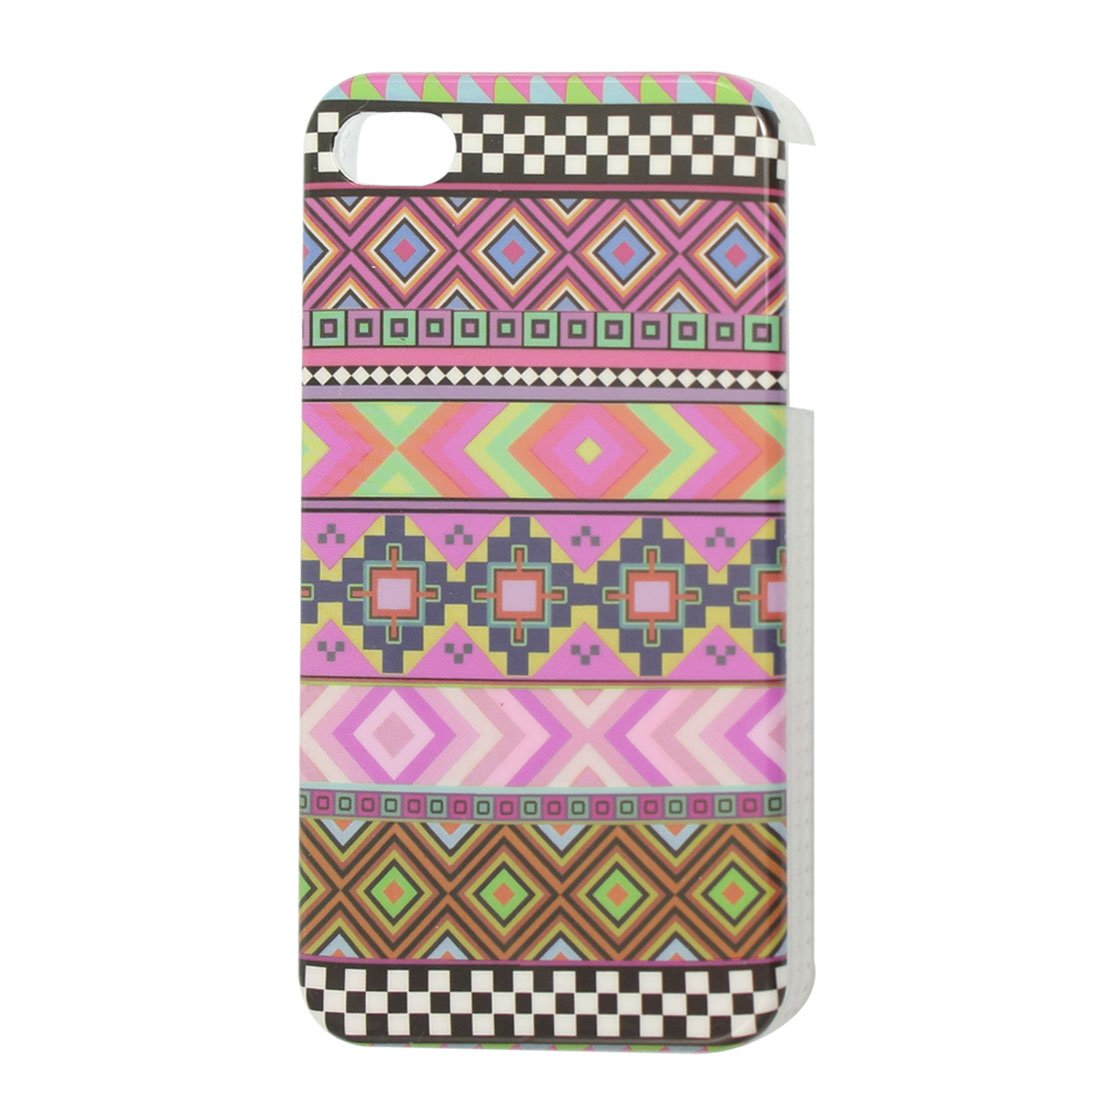 IMD Assorted Color Checkered Hard Plastic Back Case Protector for iPhone 4 4S